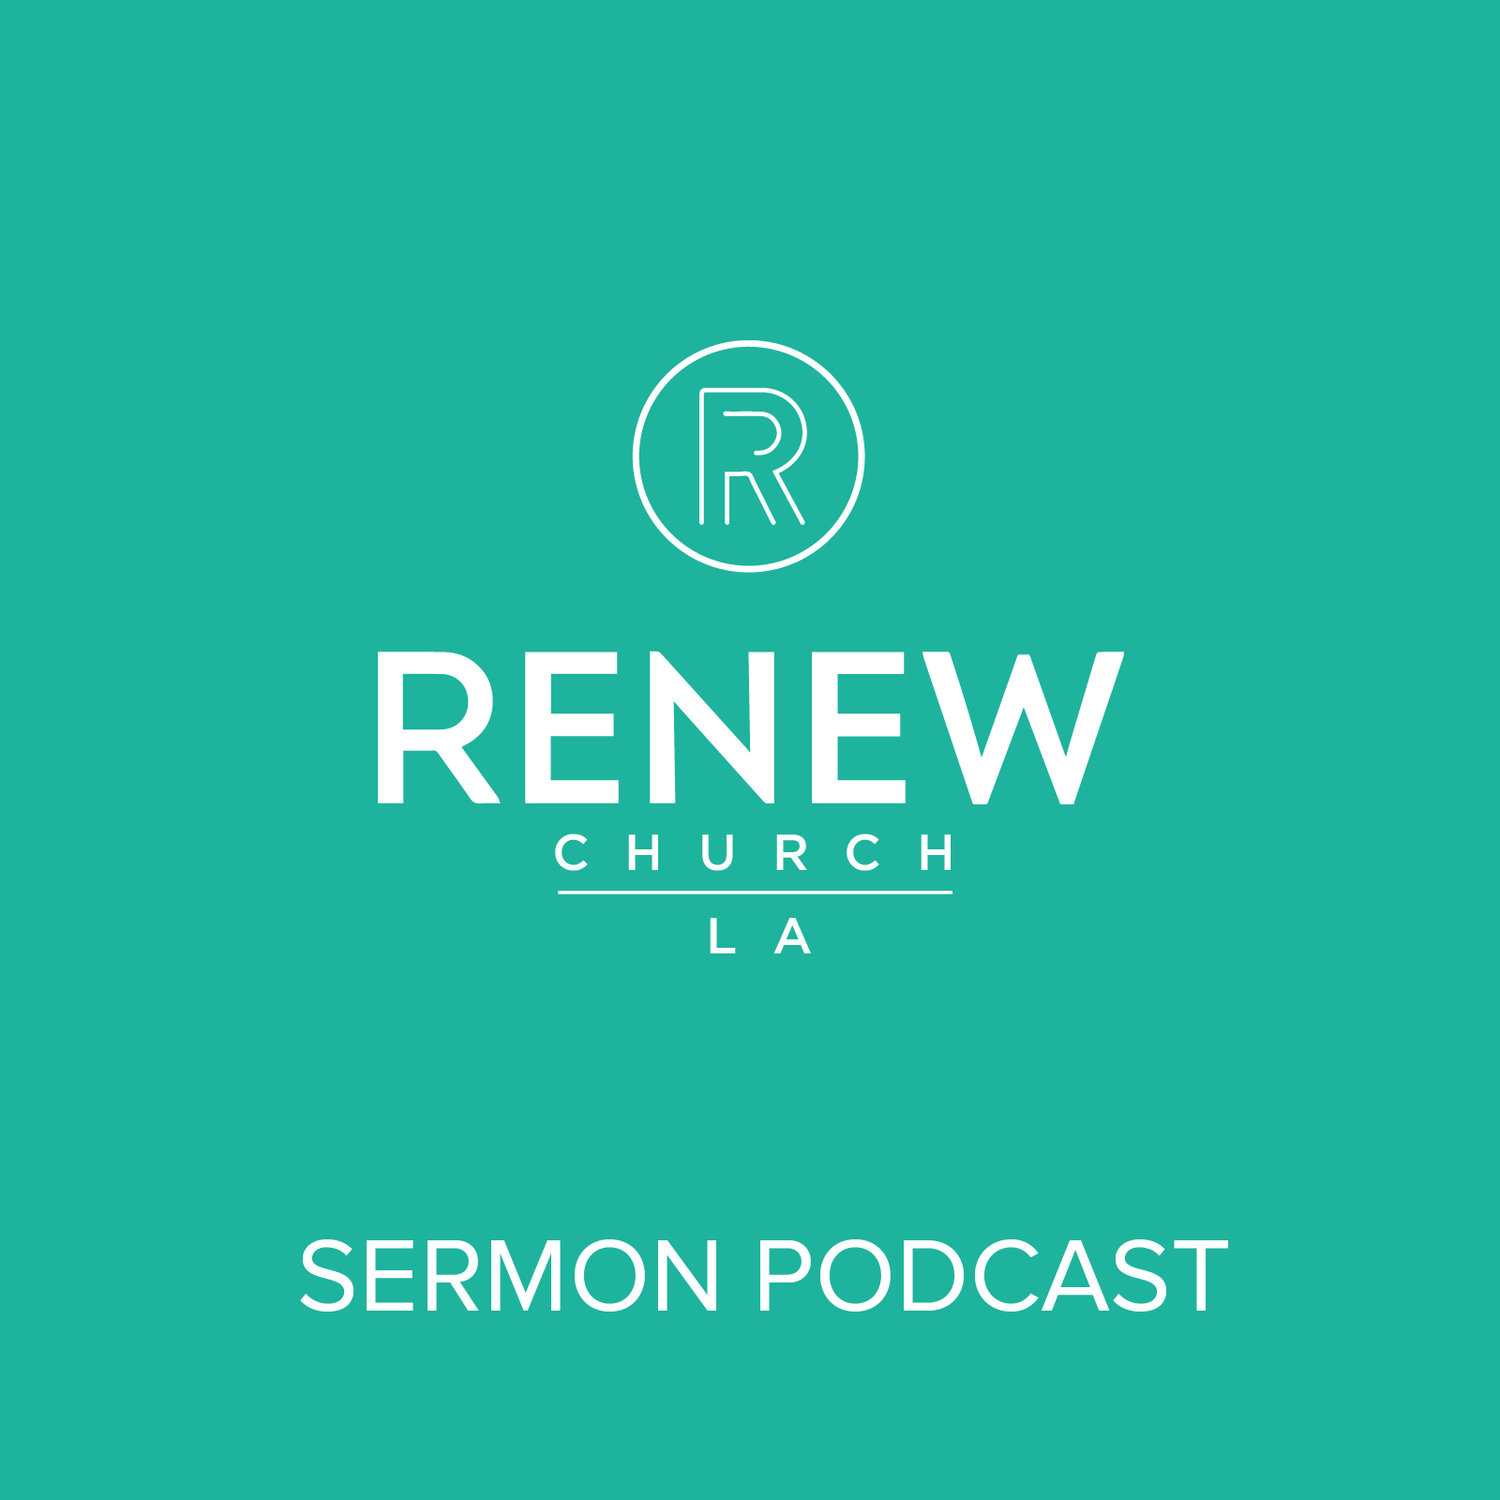 Sermon Podcast - Renew Church LA